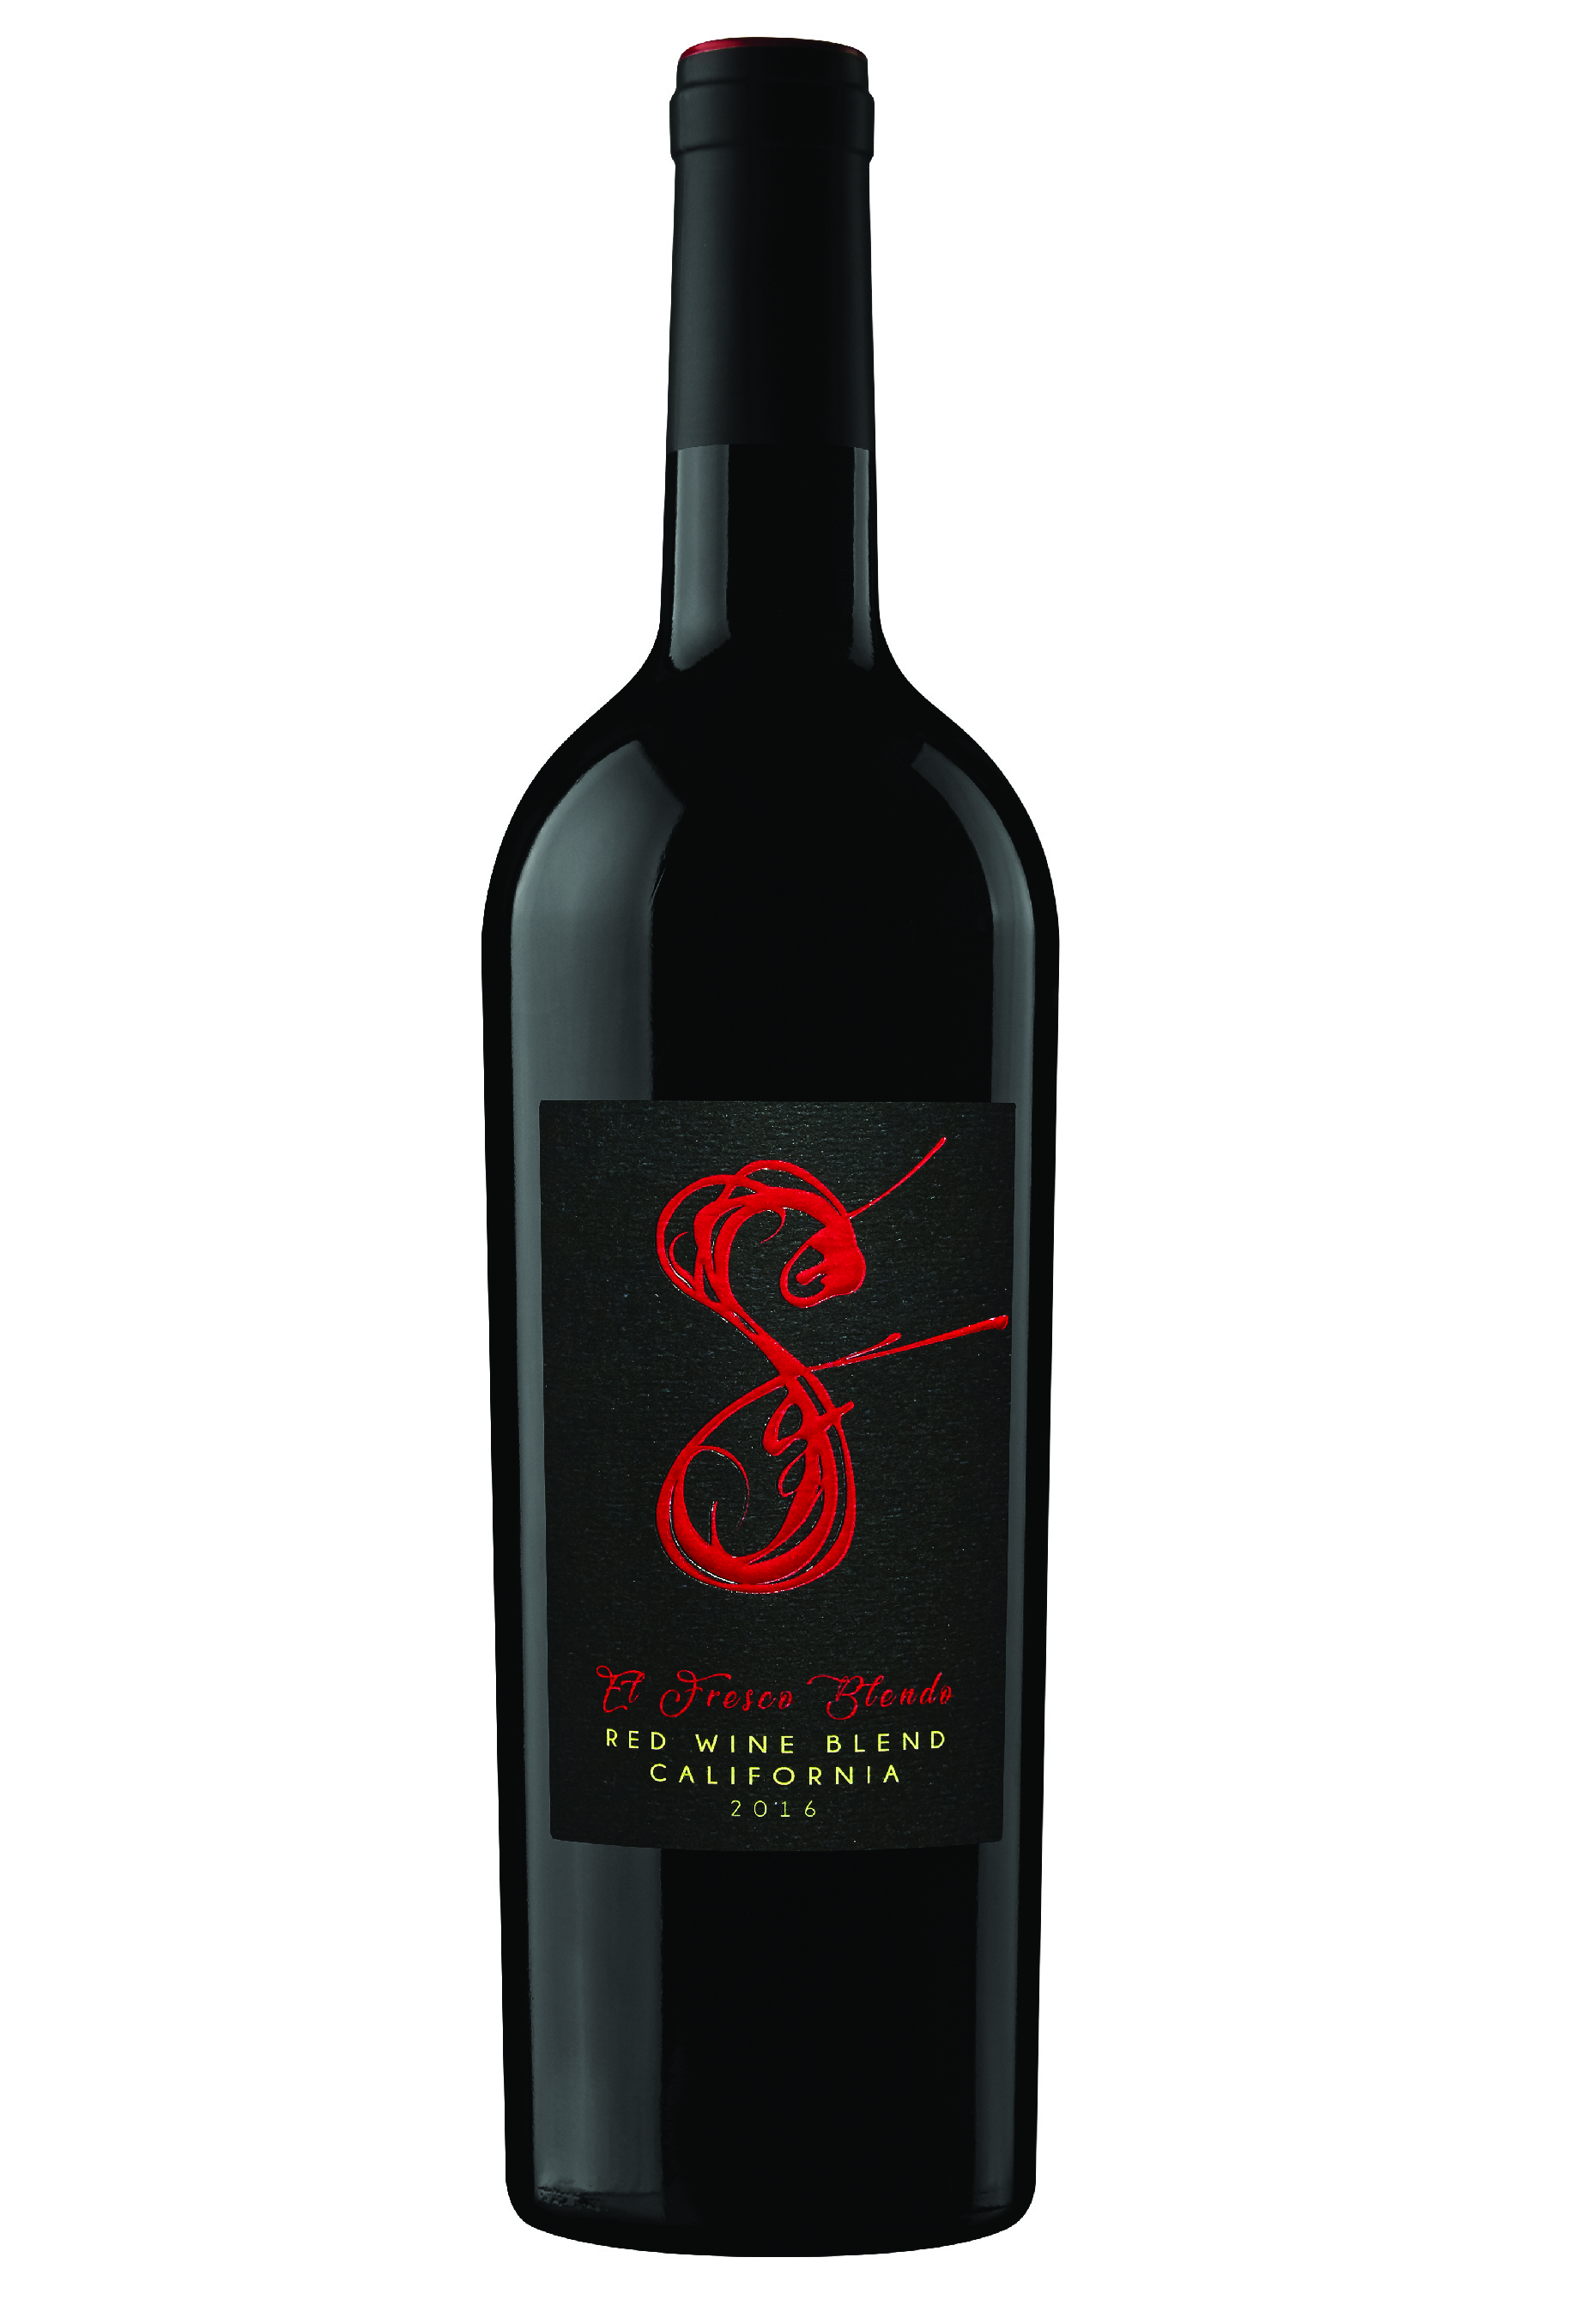 2016 El Fresco Blendo Red Blend, California (SOLD OUT)